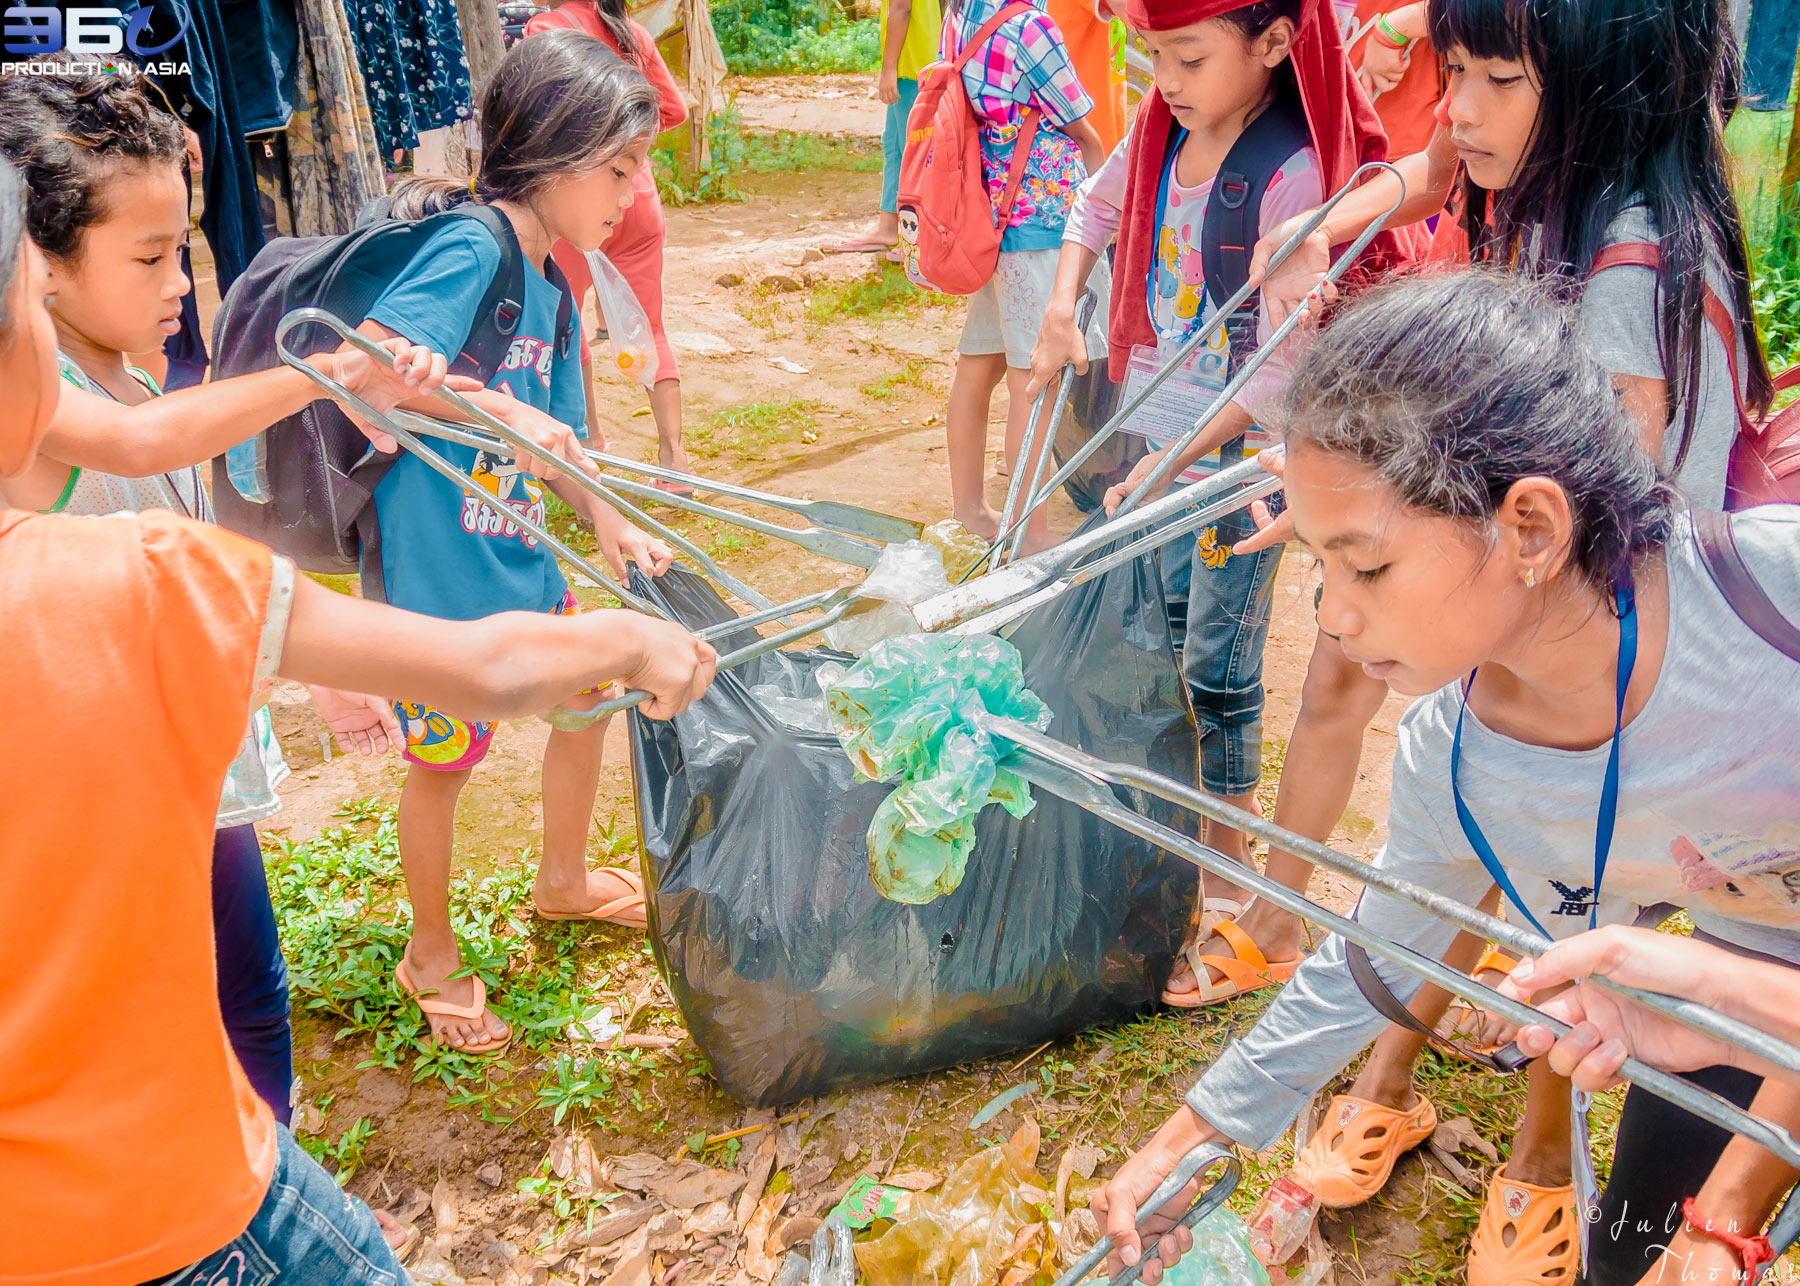 Group of young Cambodian schoolchildren are picking up discarded plastic waste - plastic bags in their community for a recycle and ecological course at school.